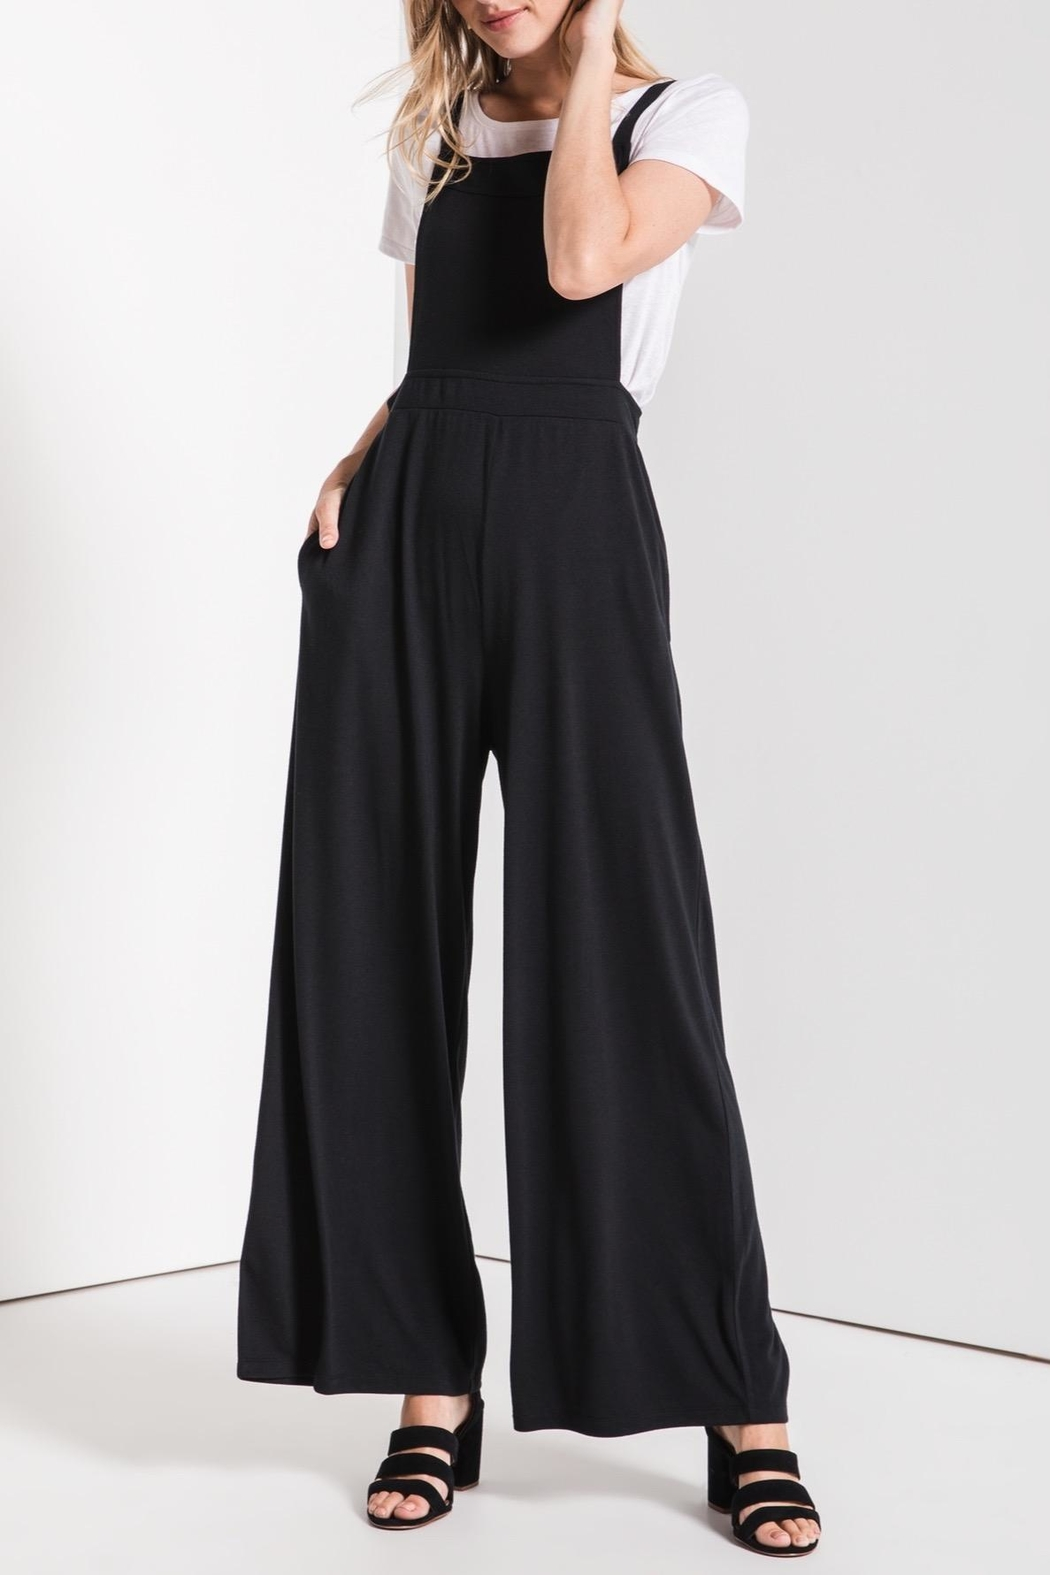 z supply Overall Styled Jumpsuit - Back Cropped Image